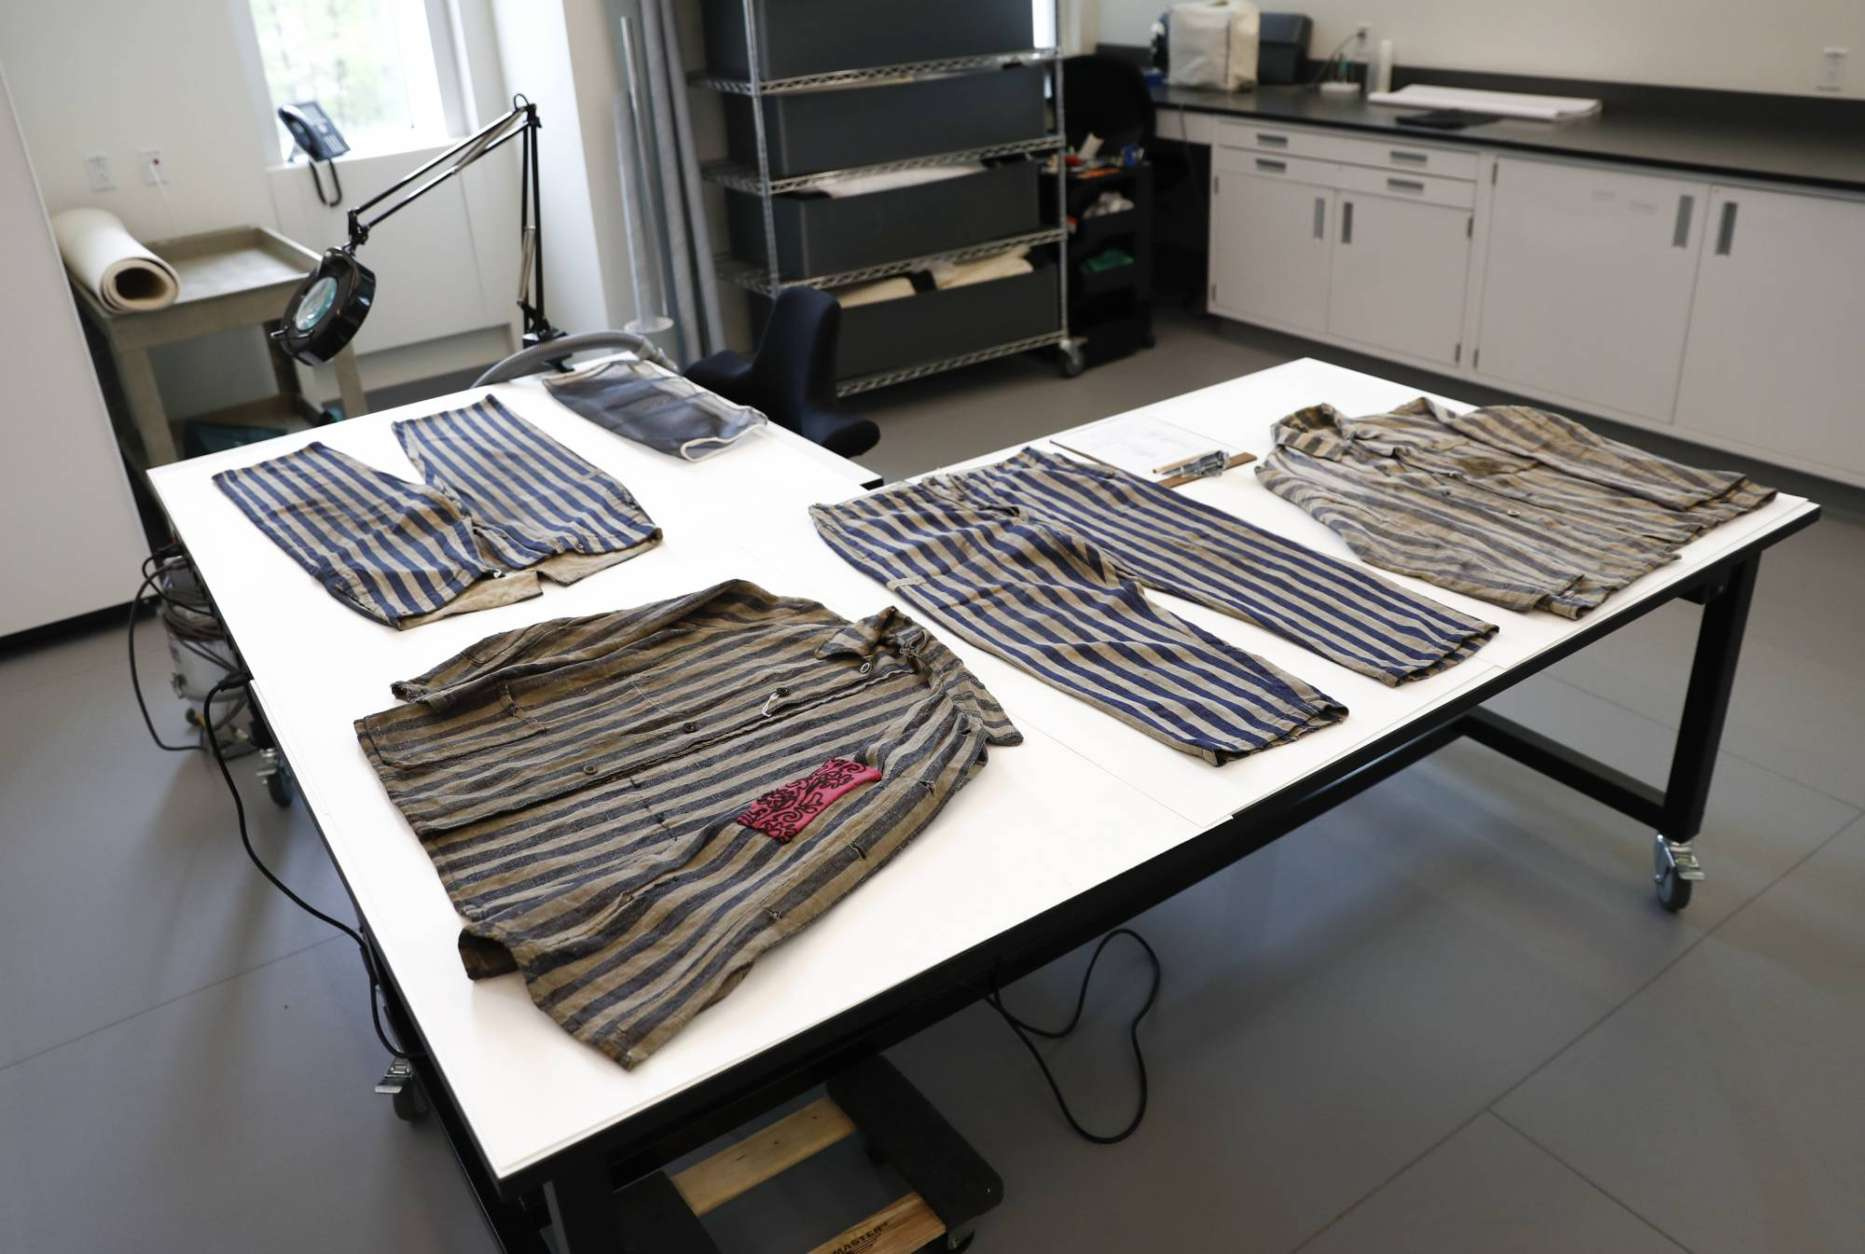 Clothing worn in a work camp by an uncle and nephew who where saved by being on Schindler's List is seen at the U.S. Holocaust Memorial Museum's David and Fela Shapell Family Collections, Conservation and Research Center in Bowie, Md., Monday, April 24, 2017. The Shapell Center is a new state-of-the-art facility that will house the collection of record of the Holocaust. (AP Photo/Carolyn Kaster)